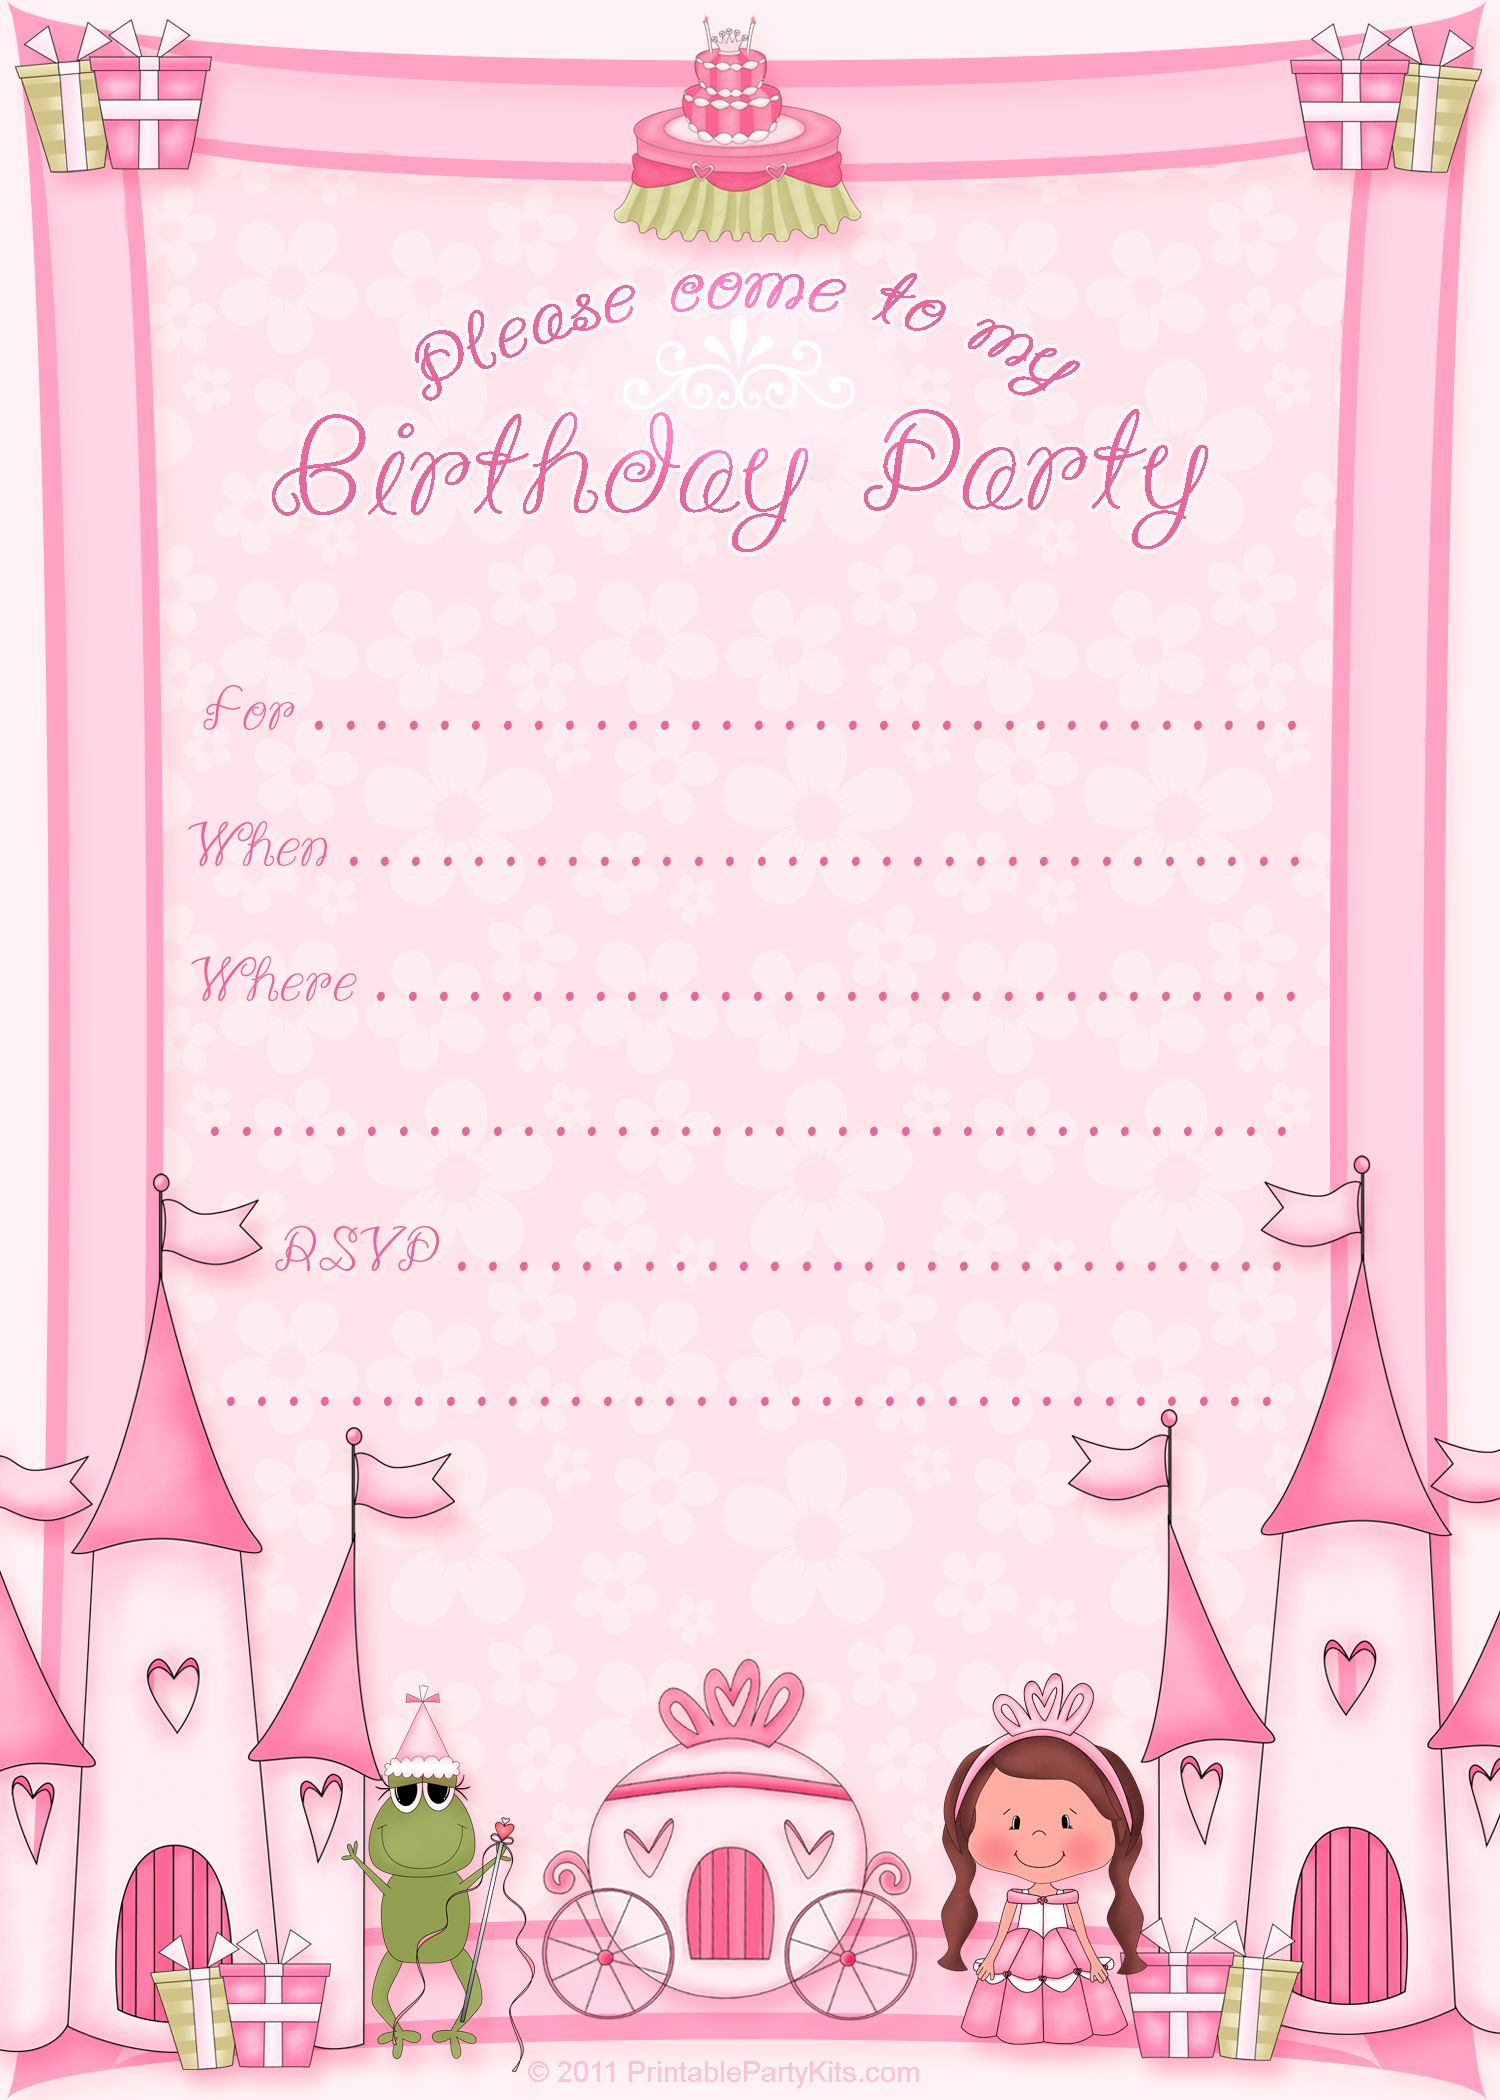 Free Invitation Template | Free Printable Invitation Pinned For Kidfolio The Parenting Mobile